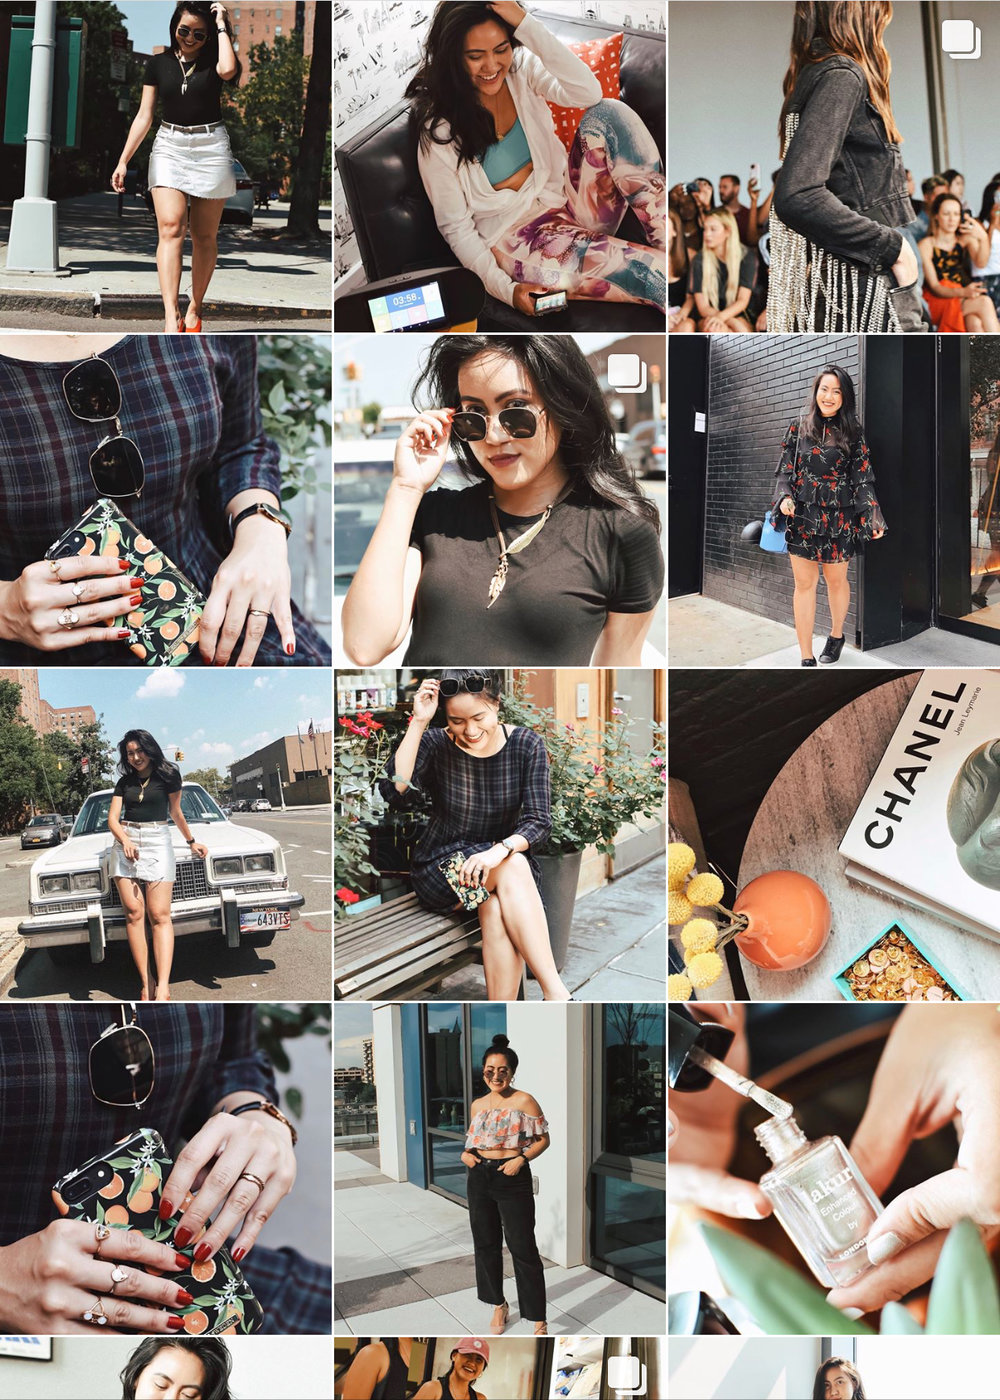 Fashion Grammer, Instastyle, Instagram Feed Inspiration